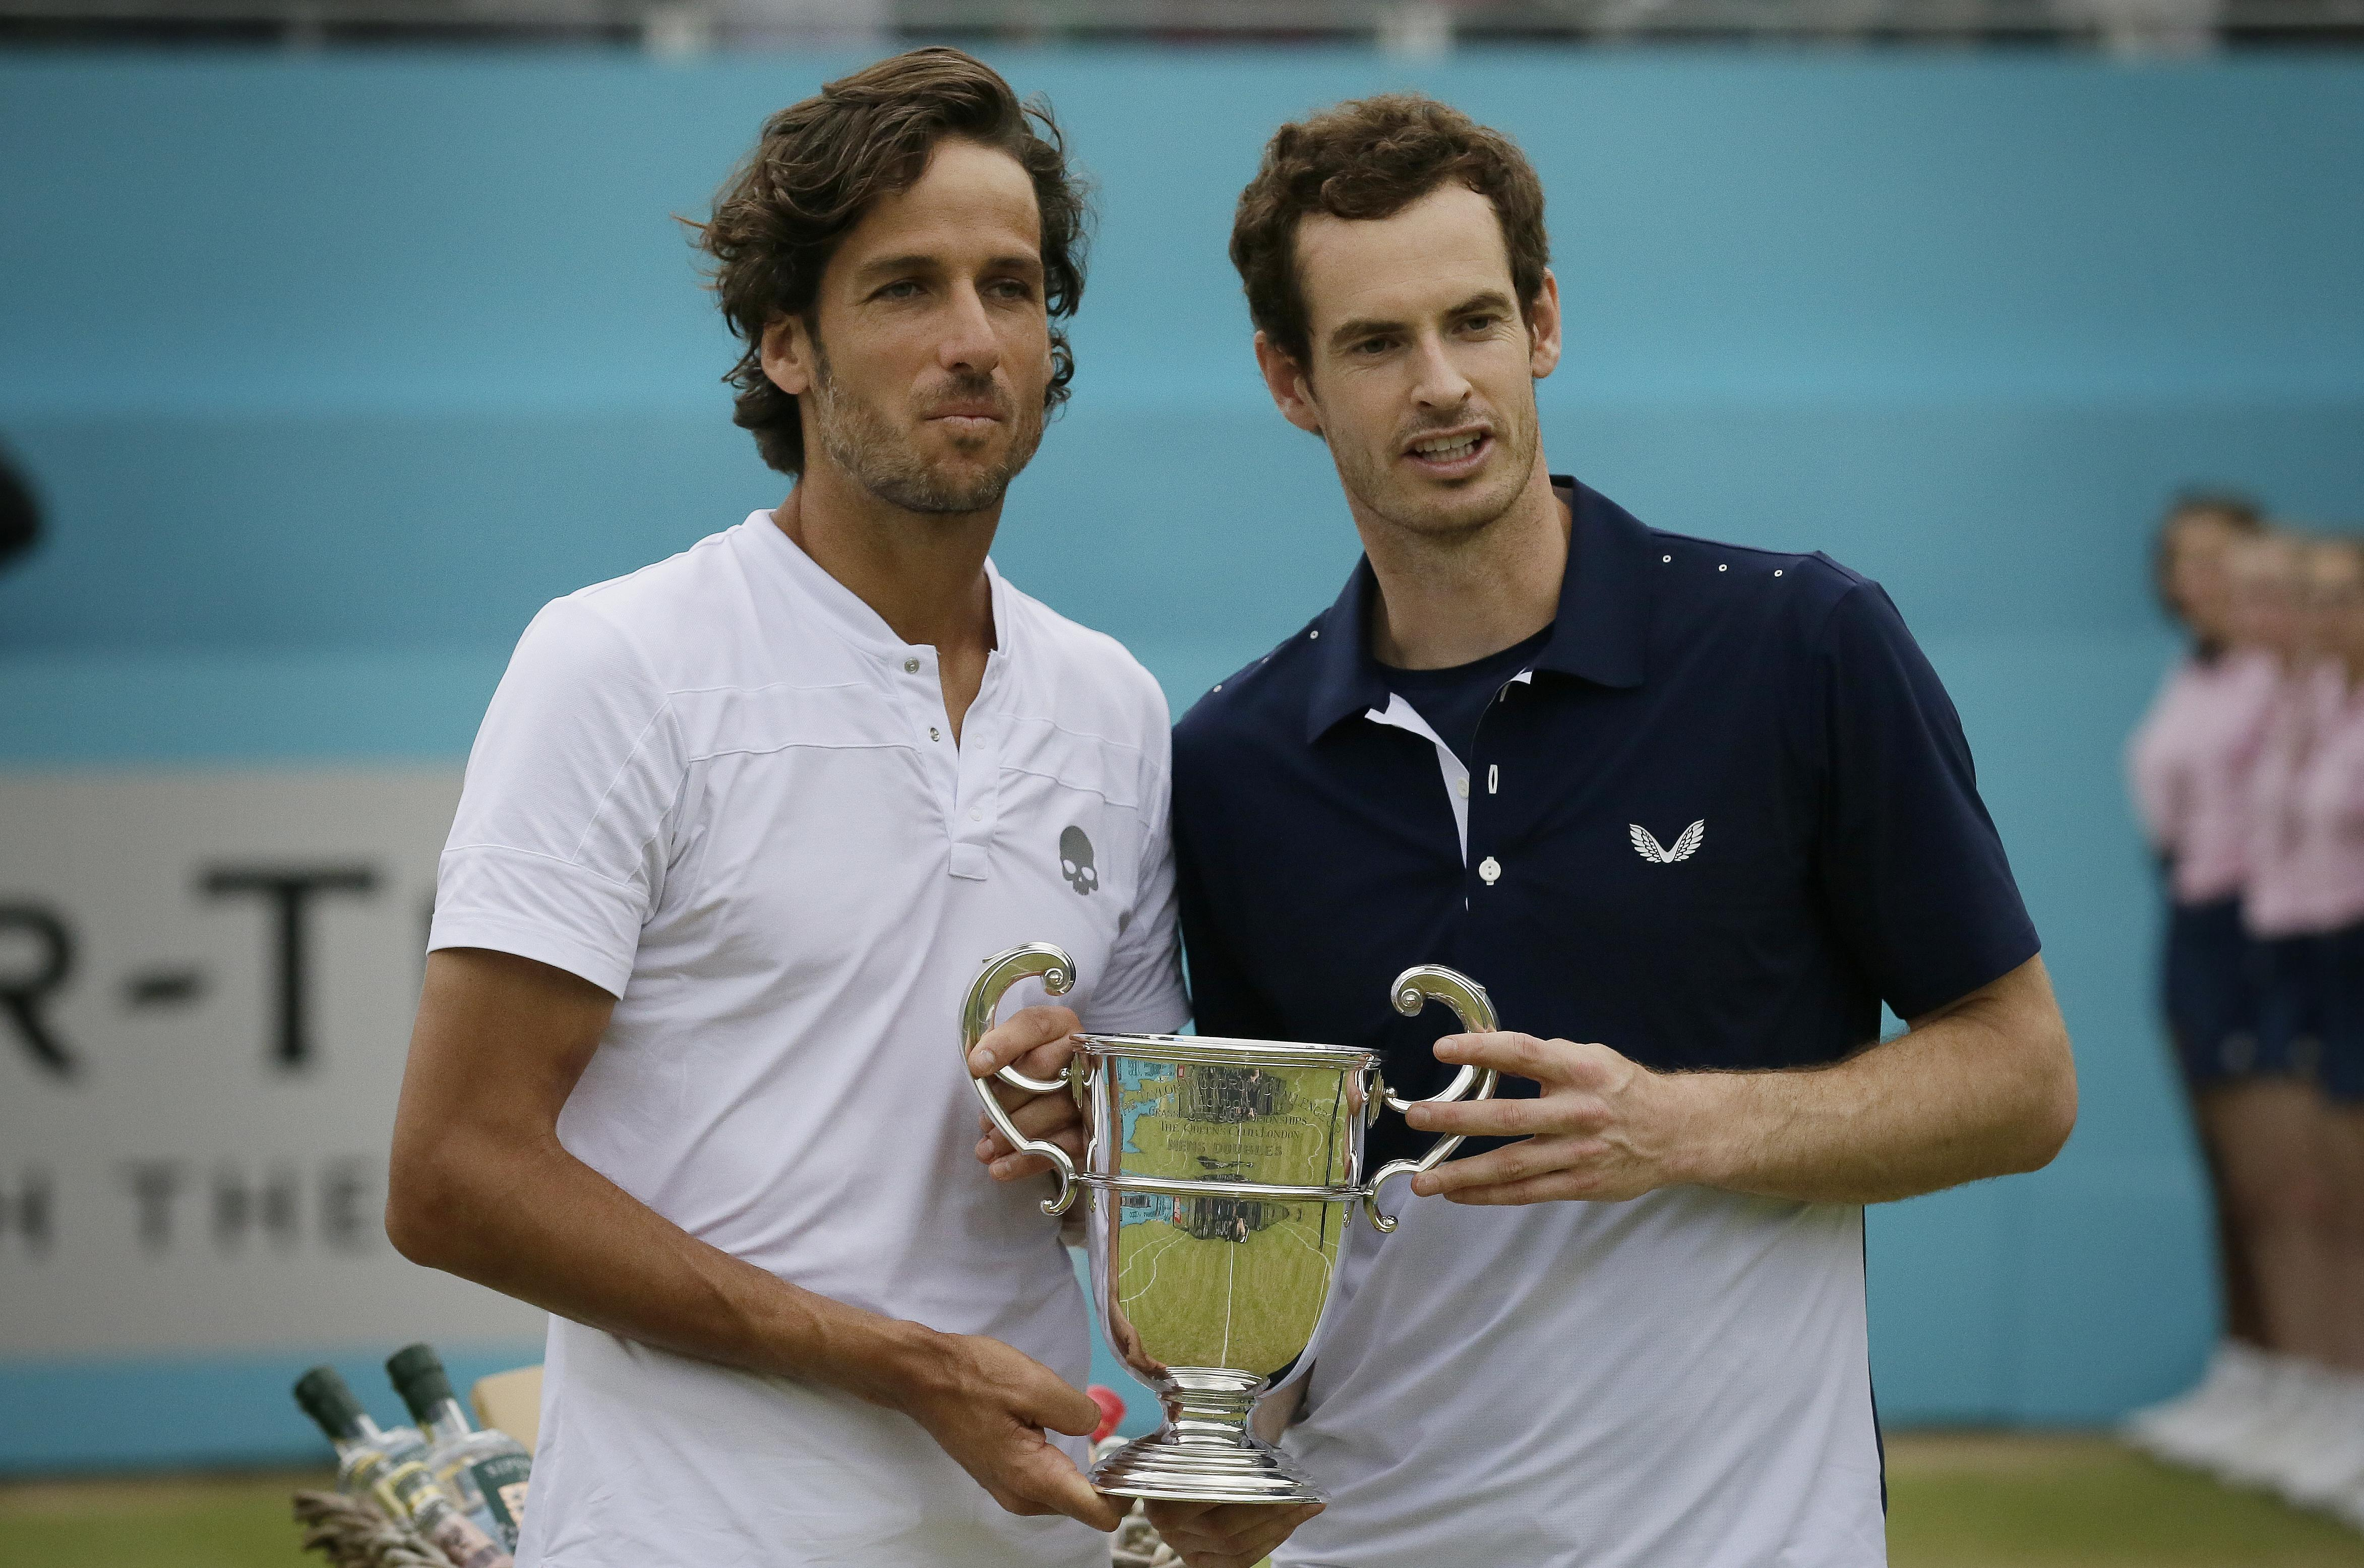 Andy Murray Completes Fairytale Return, Feliciano Lopez